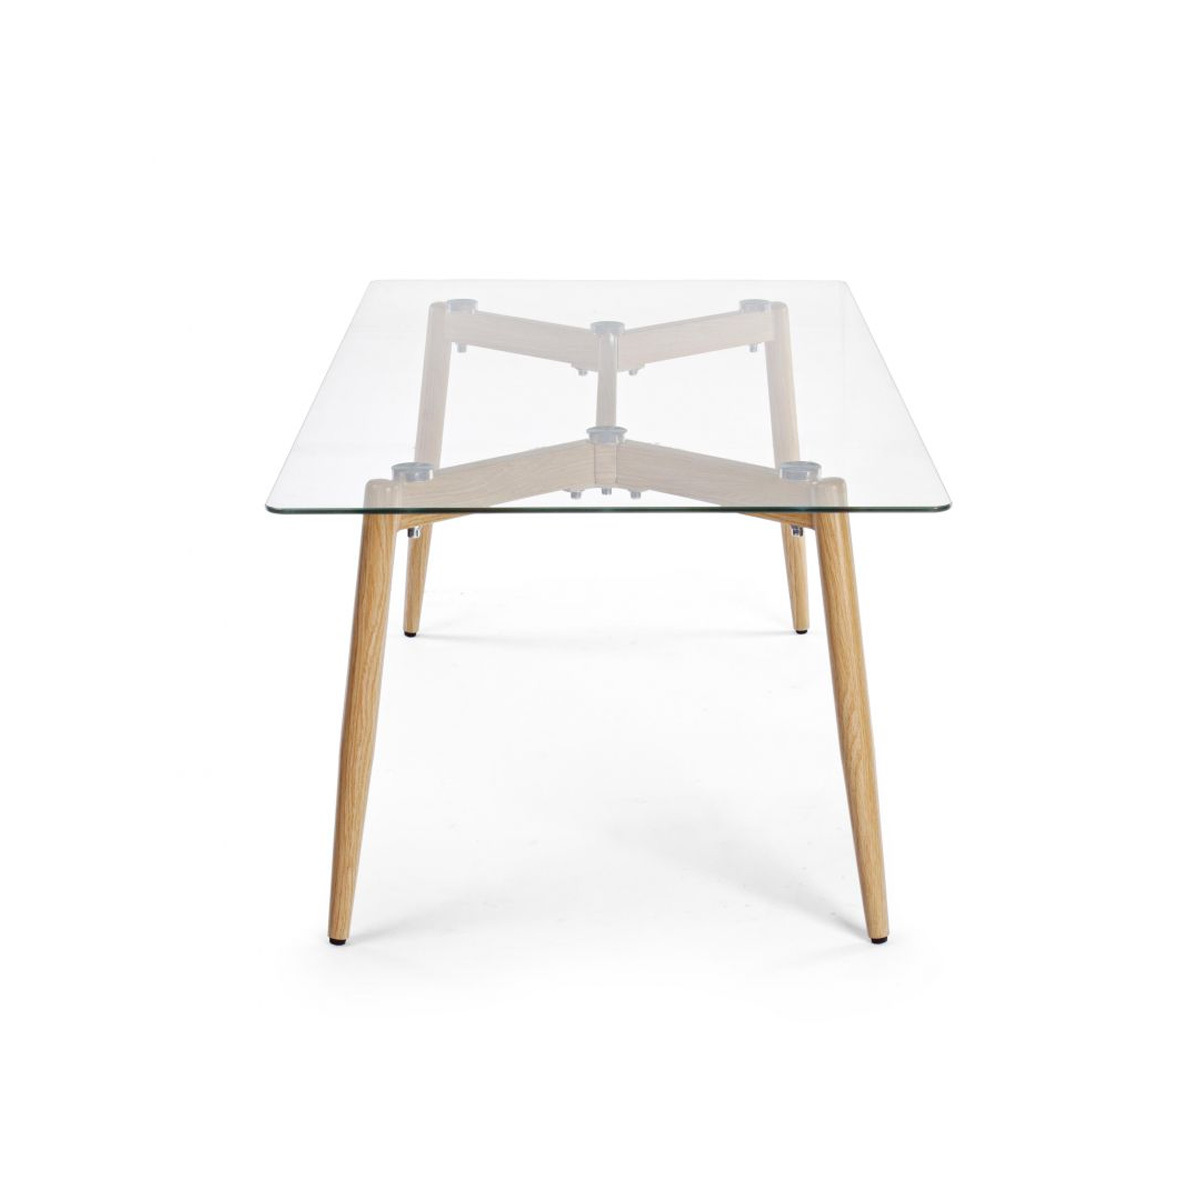 Photos 2: Bizzotto Table in metal and glass l. 110 x 60 0730796